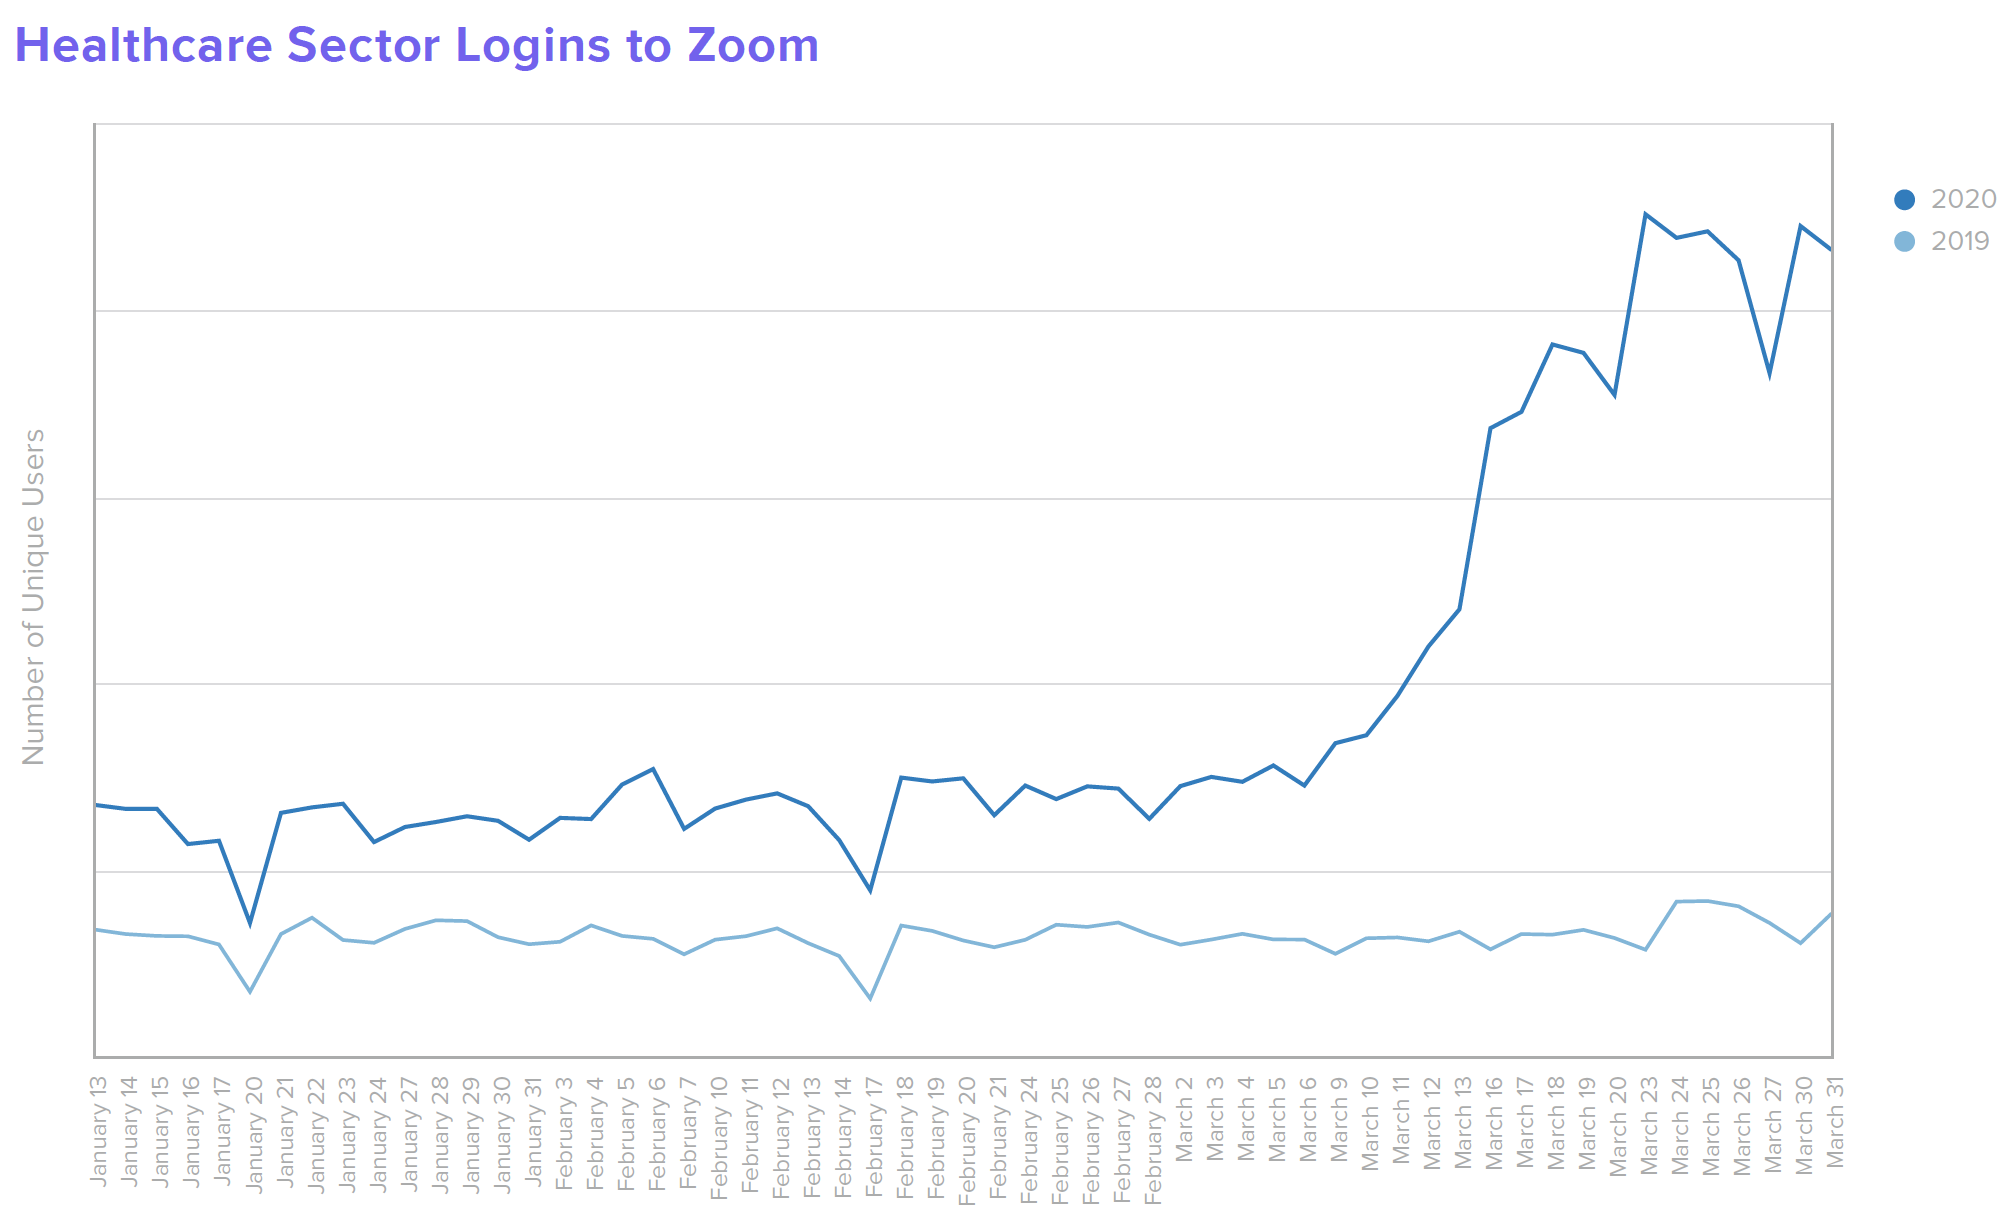 B W Healthcare Healthcare Sector Logins to Zoom